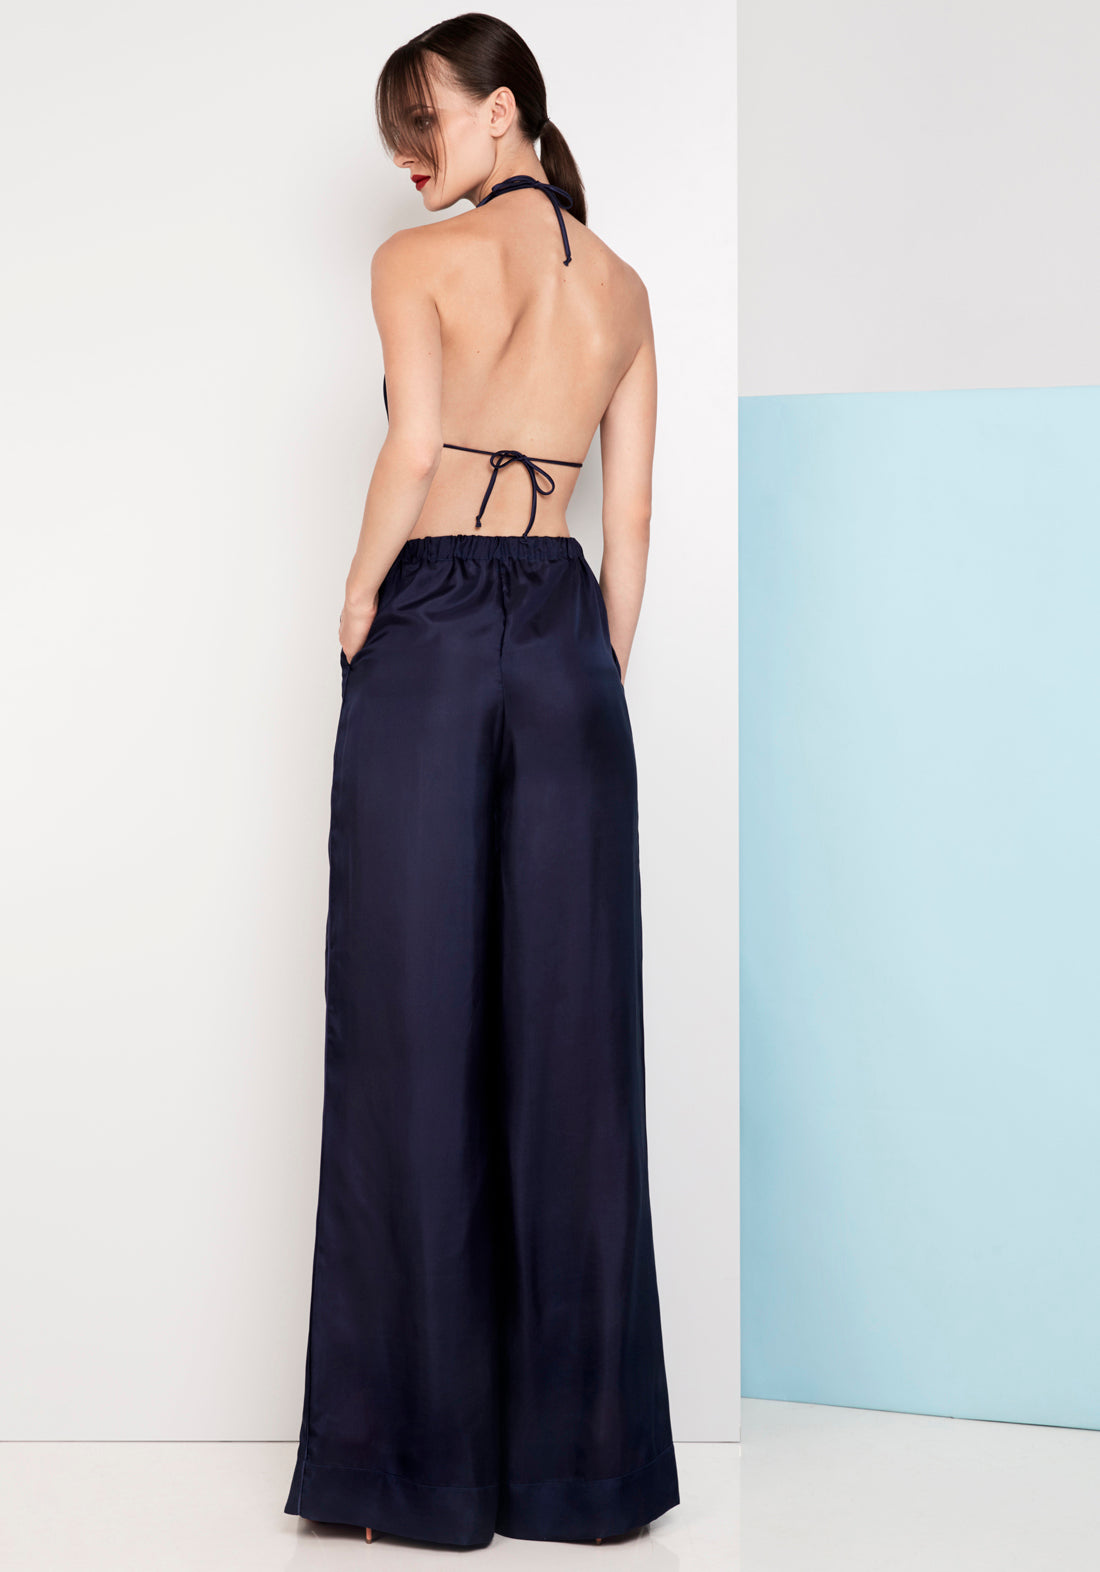 Wanderlust Wide Leg Pants in Dark Blue